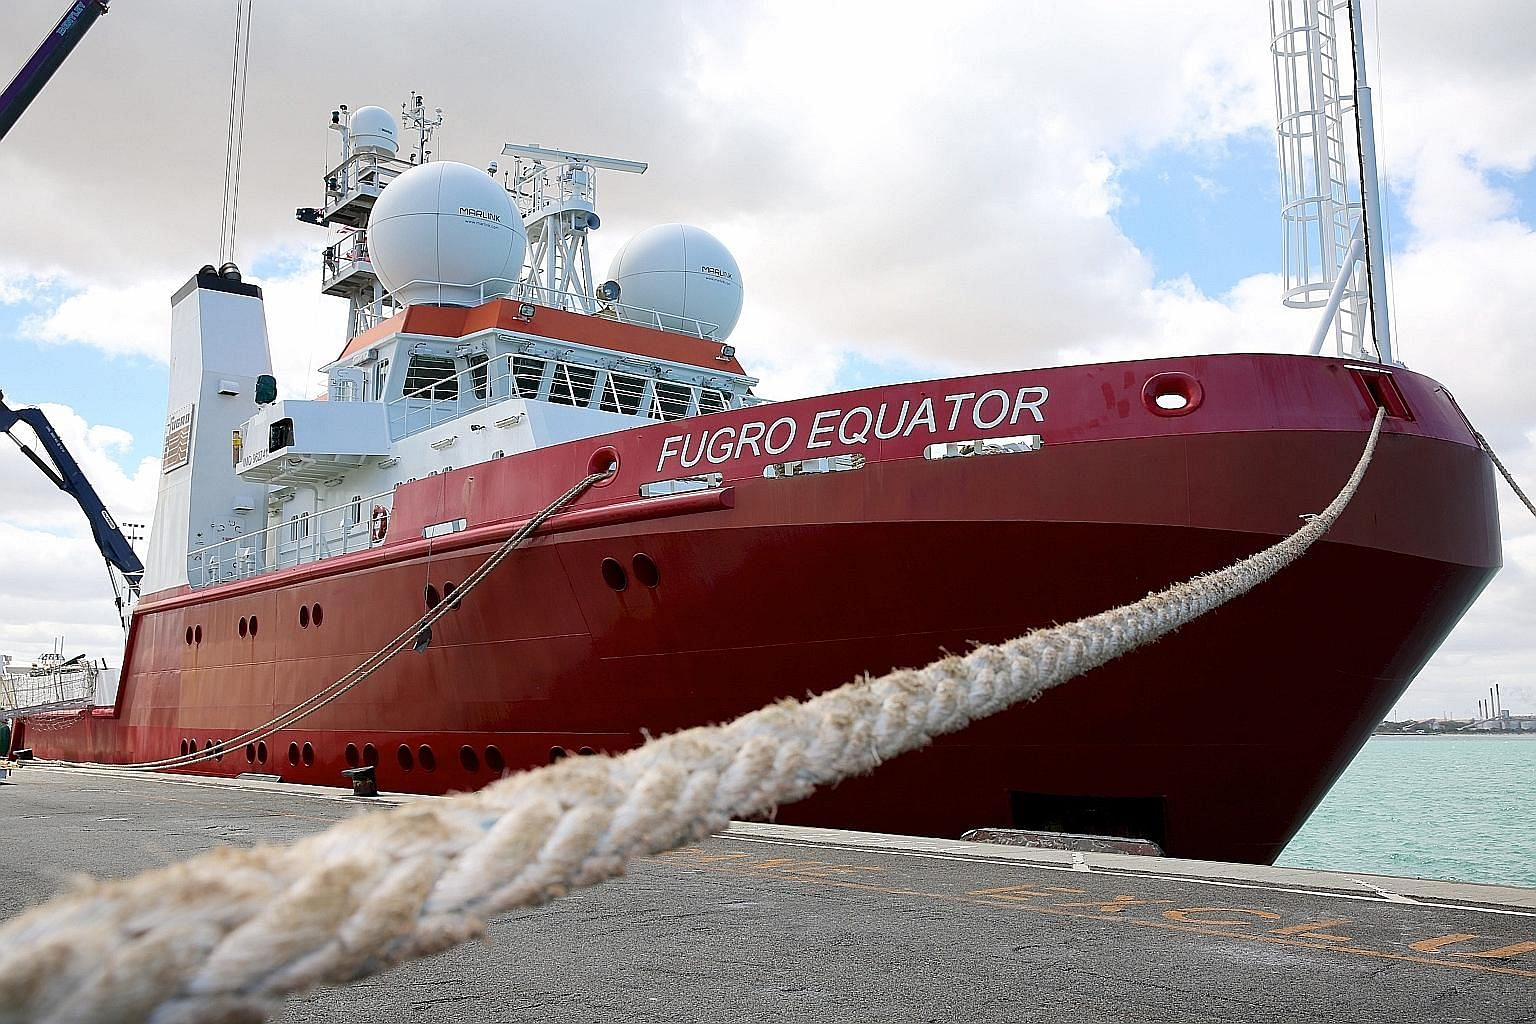 The Fugro Equator, one of the vessels involved in the underwater search for MH370, at the Australian Marine Complex in Perthon Monday, when the second phase of the search ended.